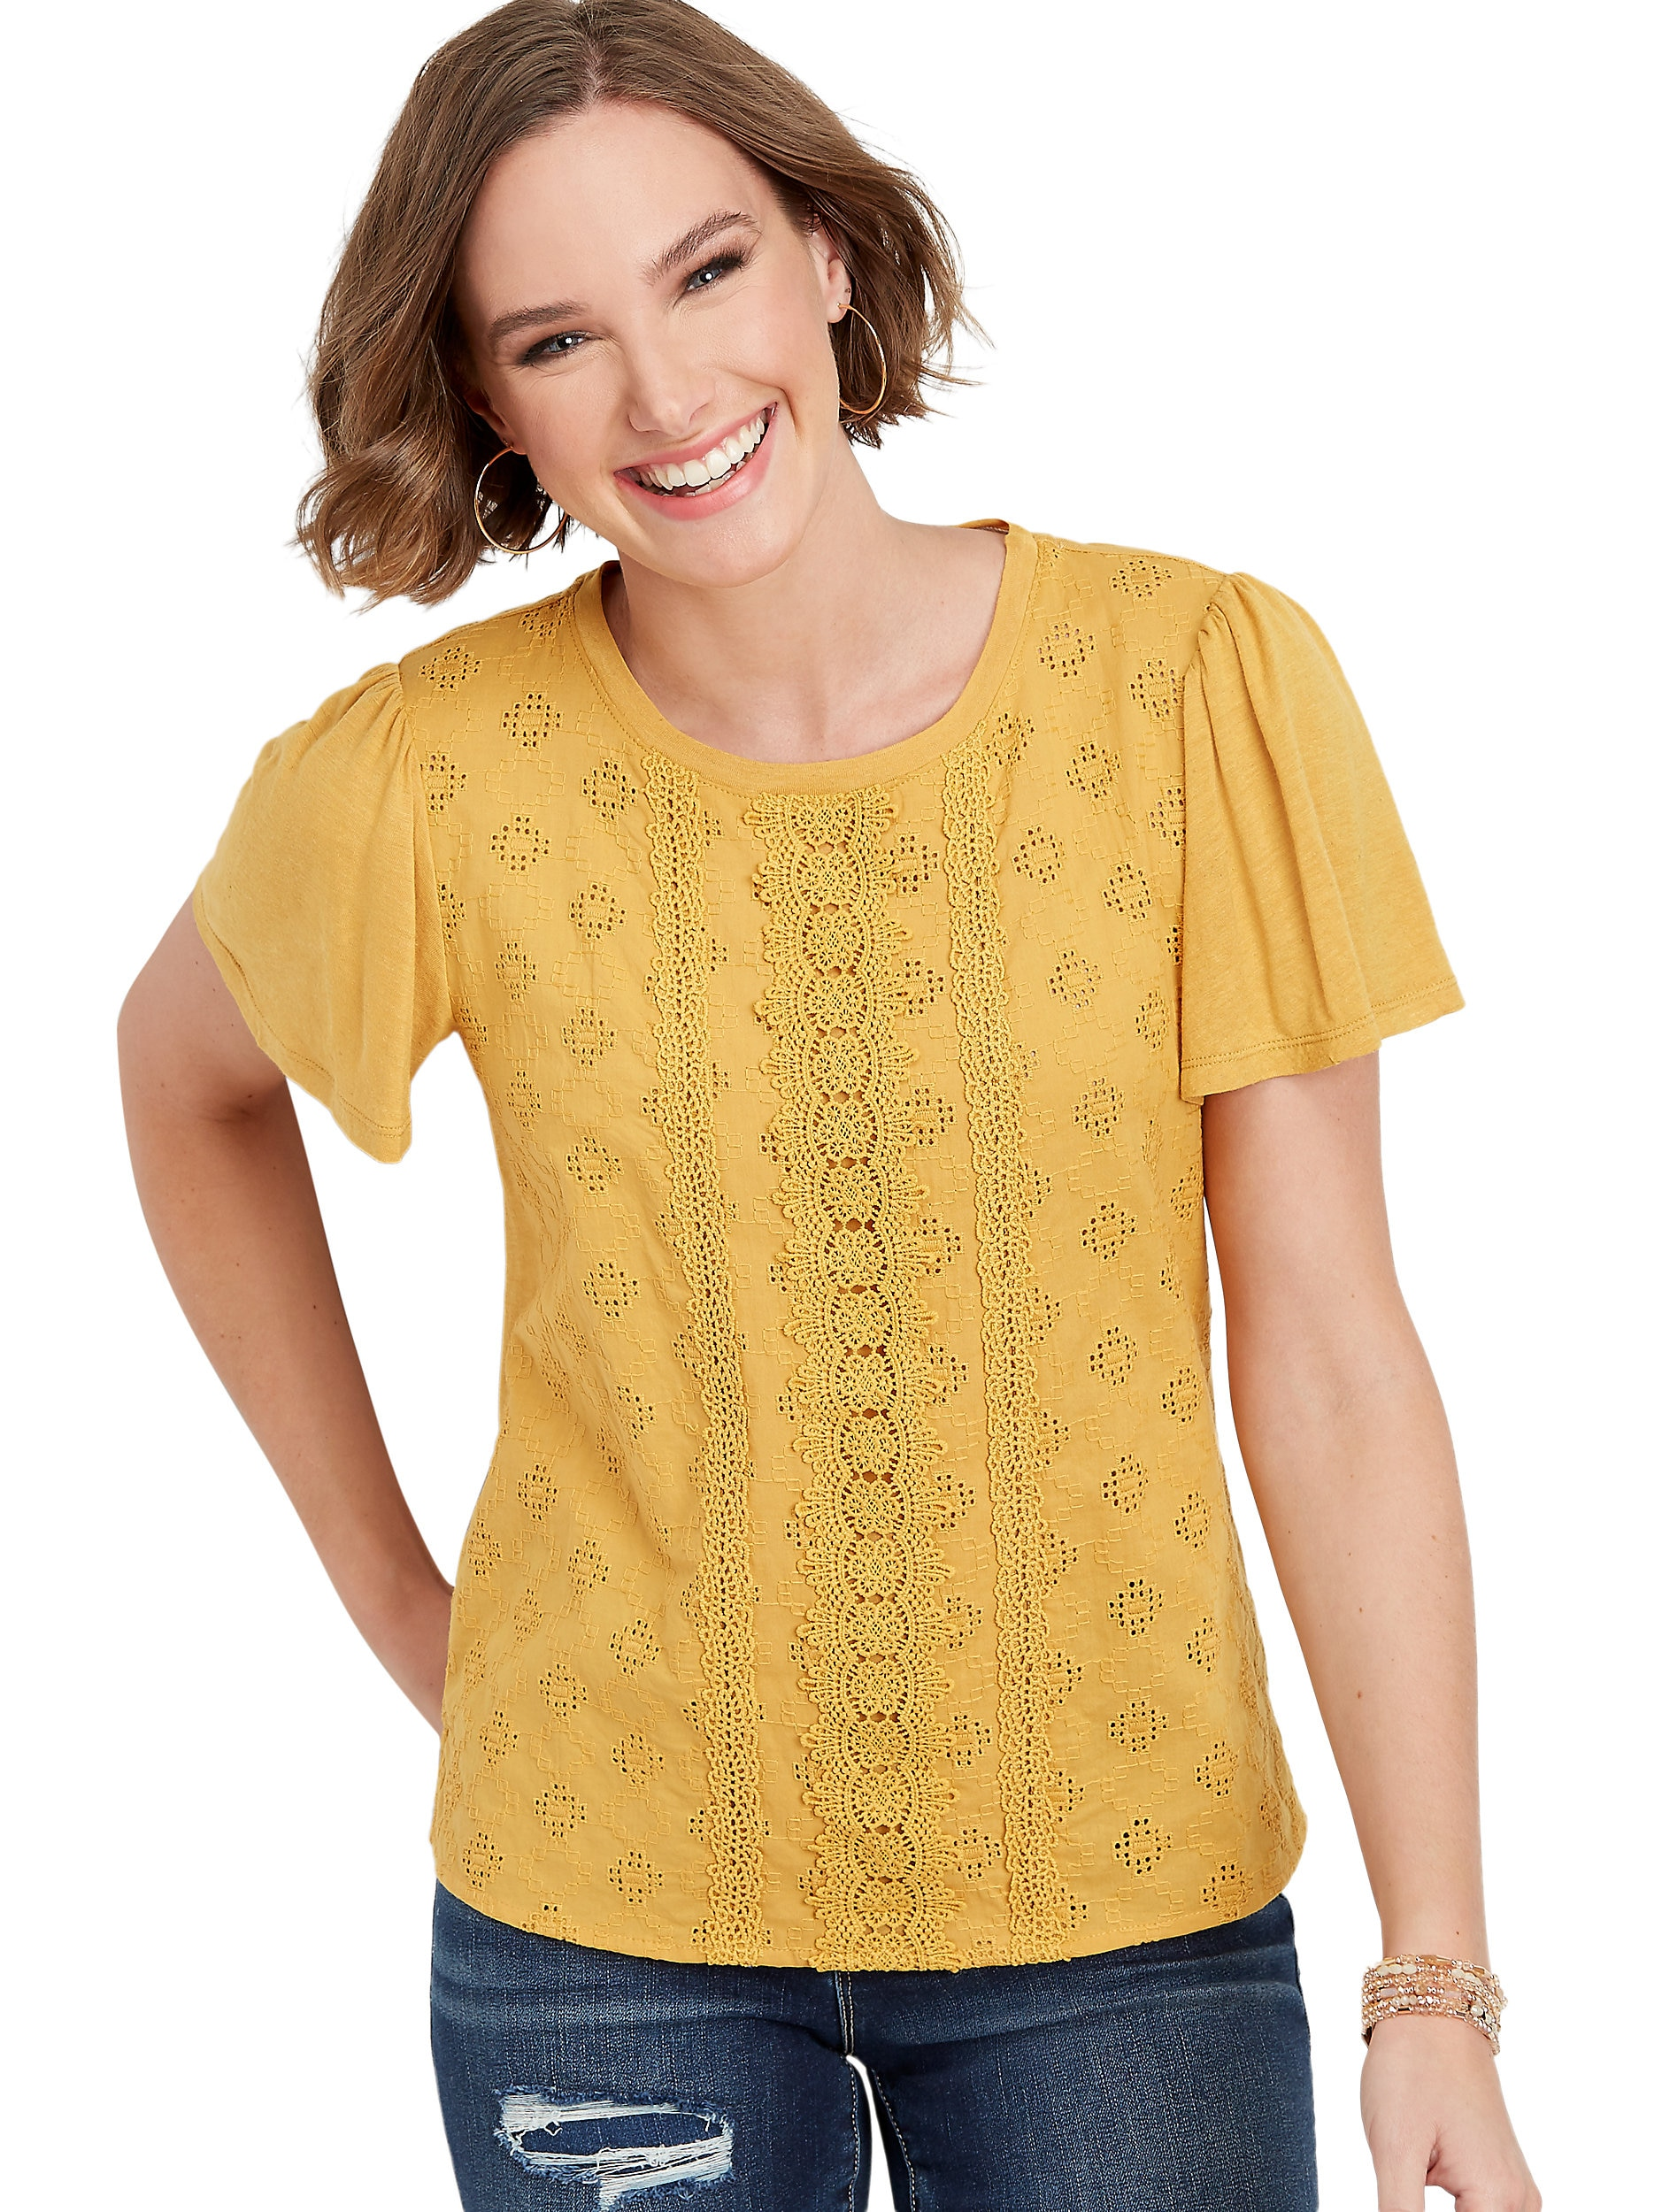 Maurices Women's Crocheted Front Tee - Solid Yellow